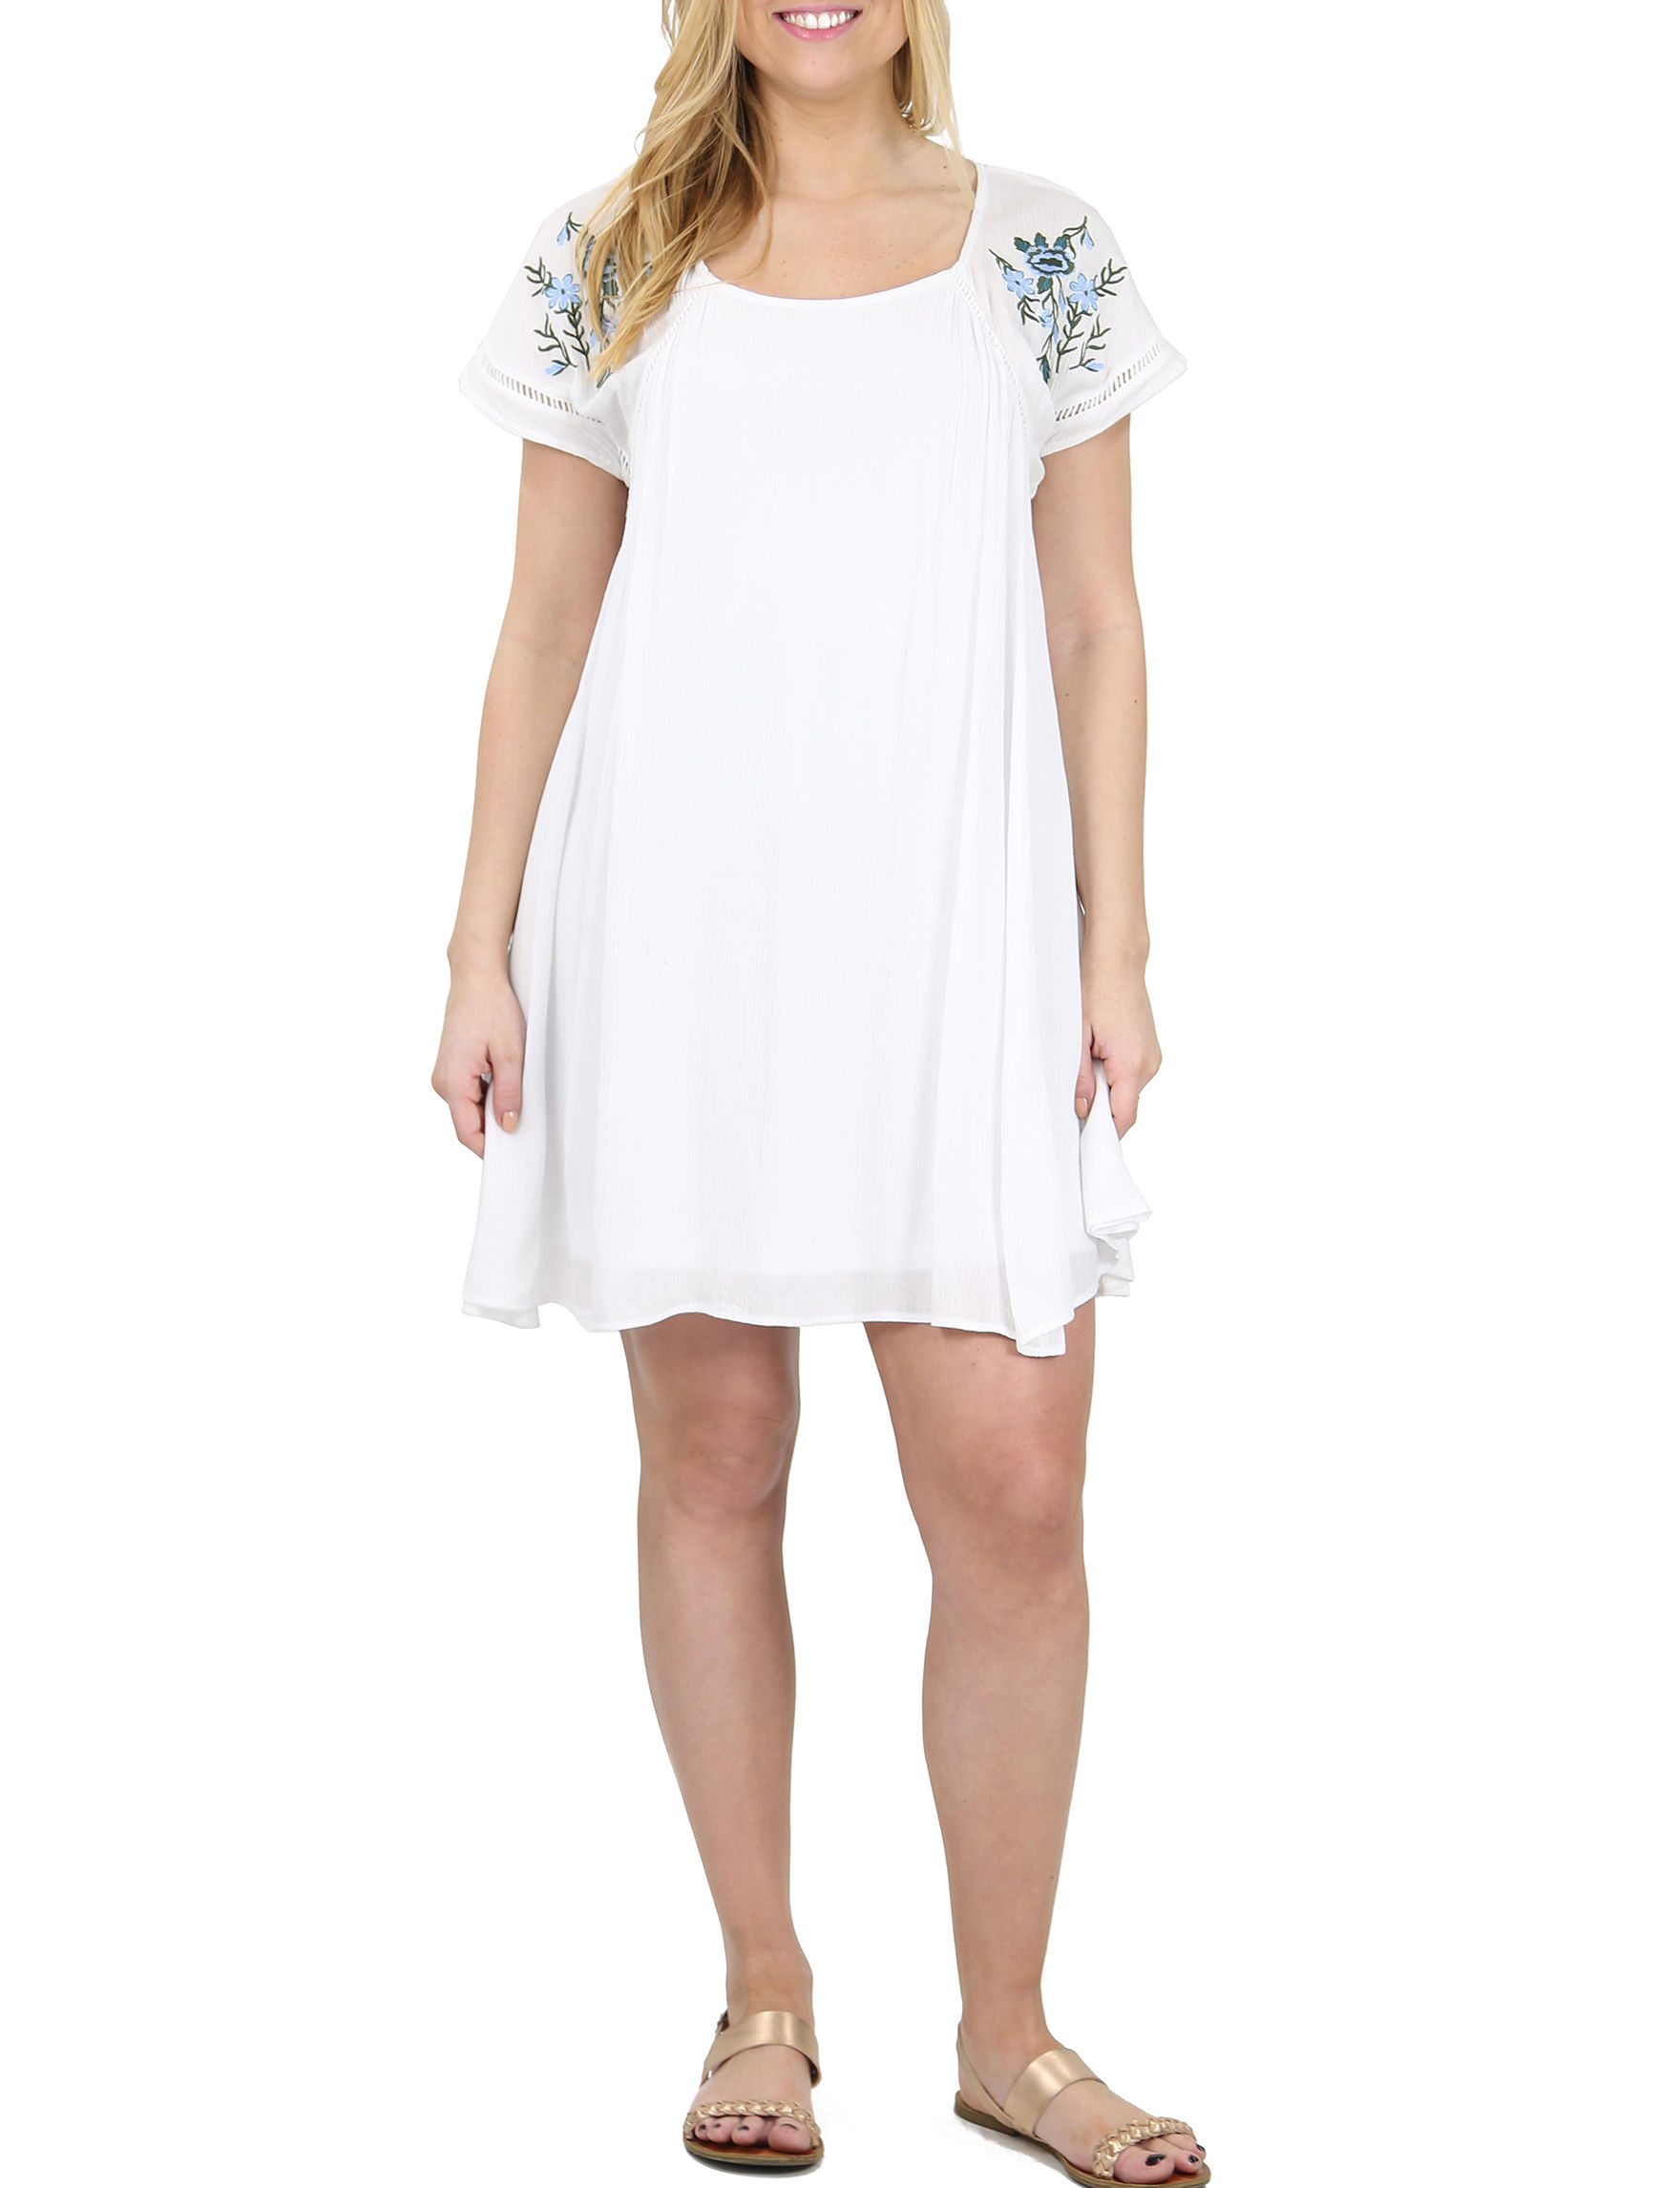 Hailey Lyn White Everyday & Casual A-line Dresses Fit & Flare Dresses